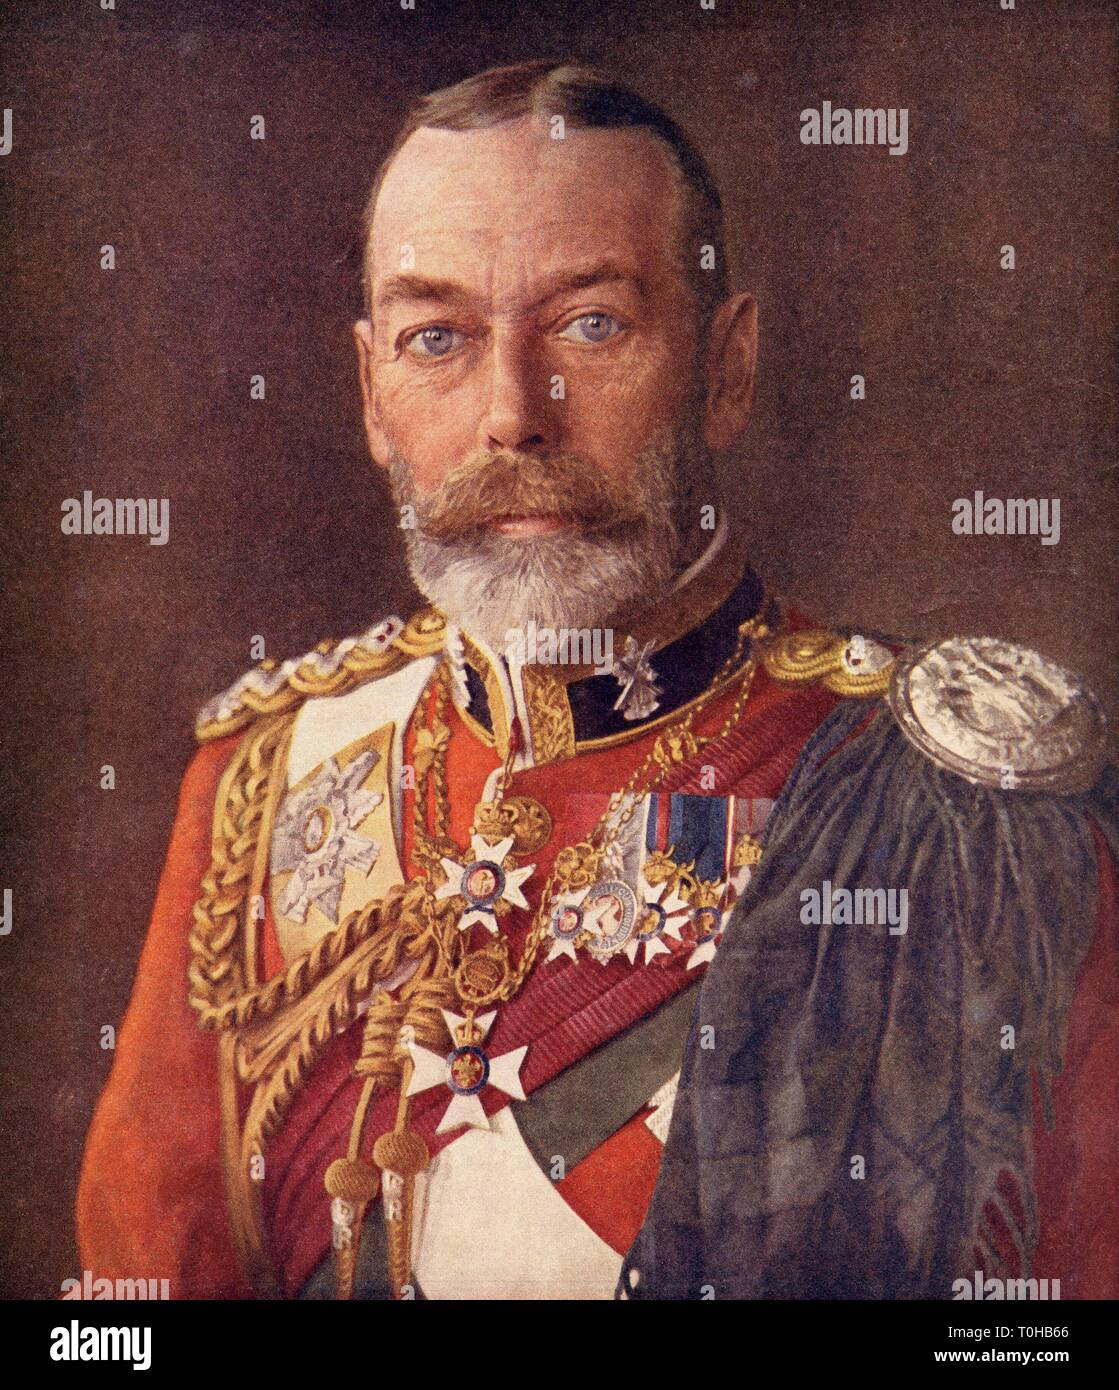 King of England and Emperor of India, George V - Stock Image